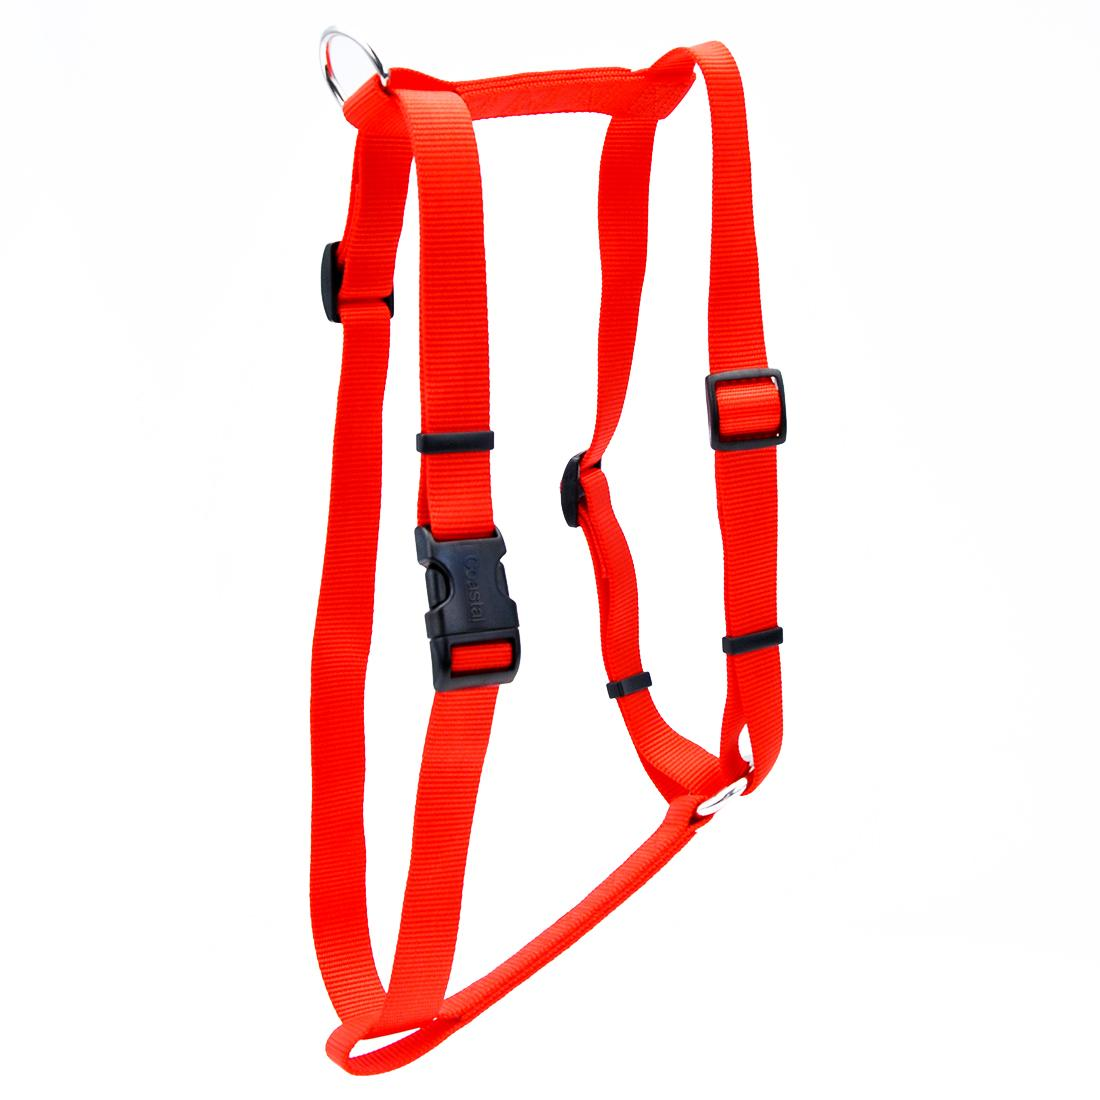 Coastal Standard Adjustable Dog Harness, Red, 1-in x 22-38-in